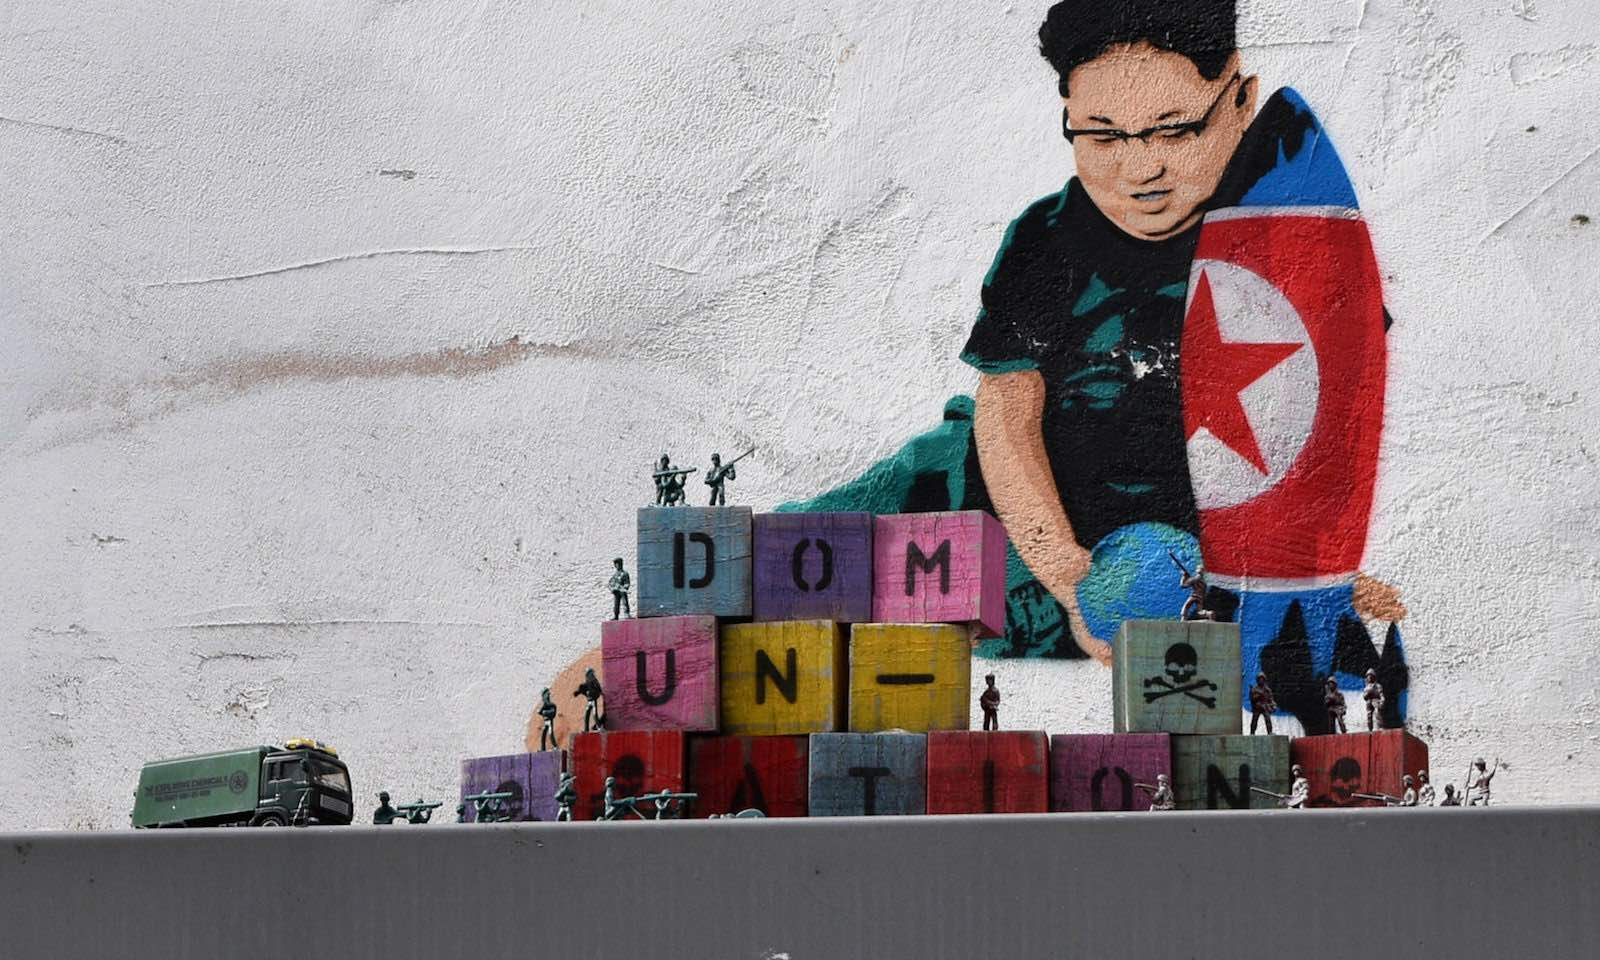 Kim Jong-un and toys ... street art in London (Photo: Loco Steve/Flickr)